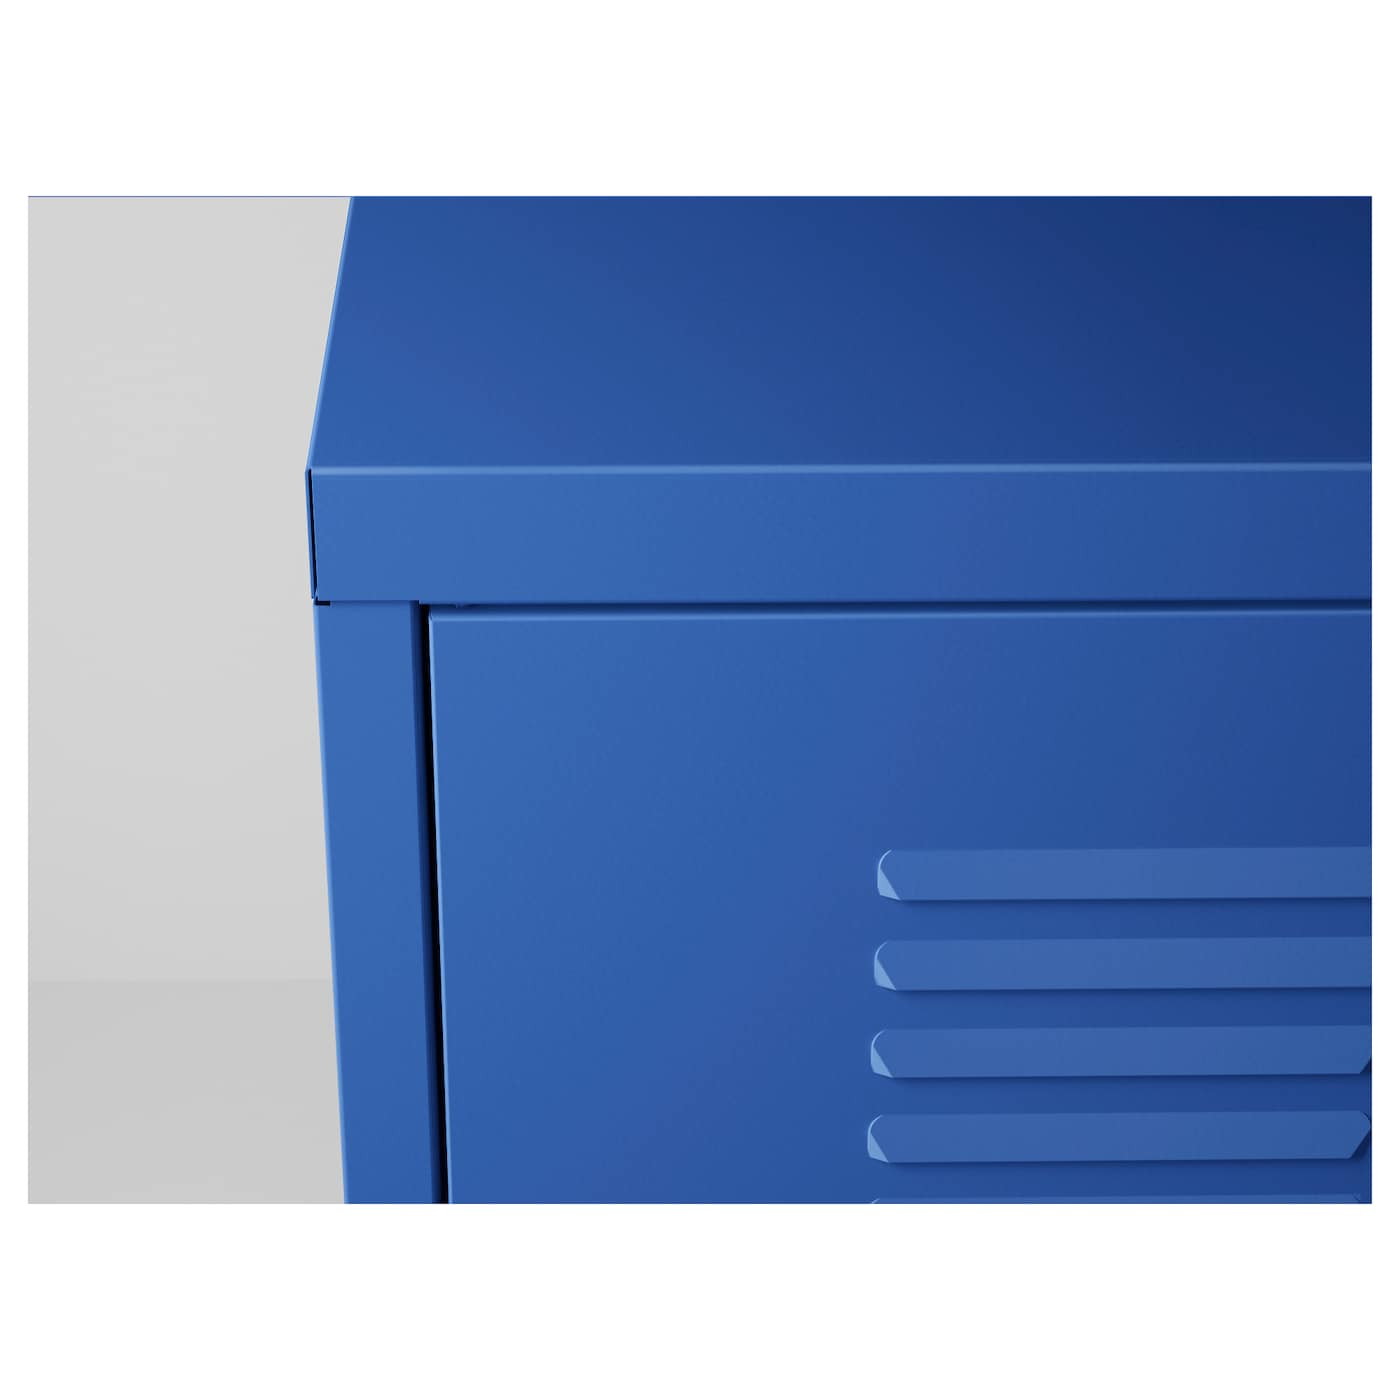 ikea ps cabinet blue 119x63 cm ikea. Black Bedroom Furniture Sets. Home Design Ideas